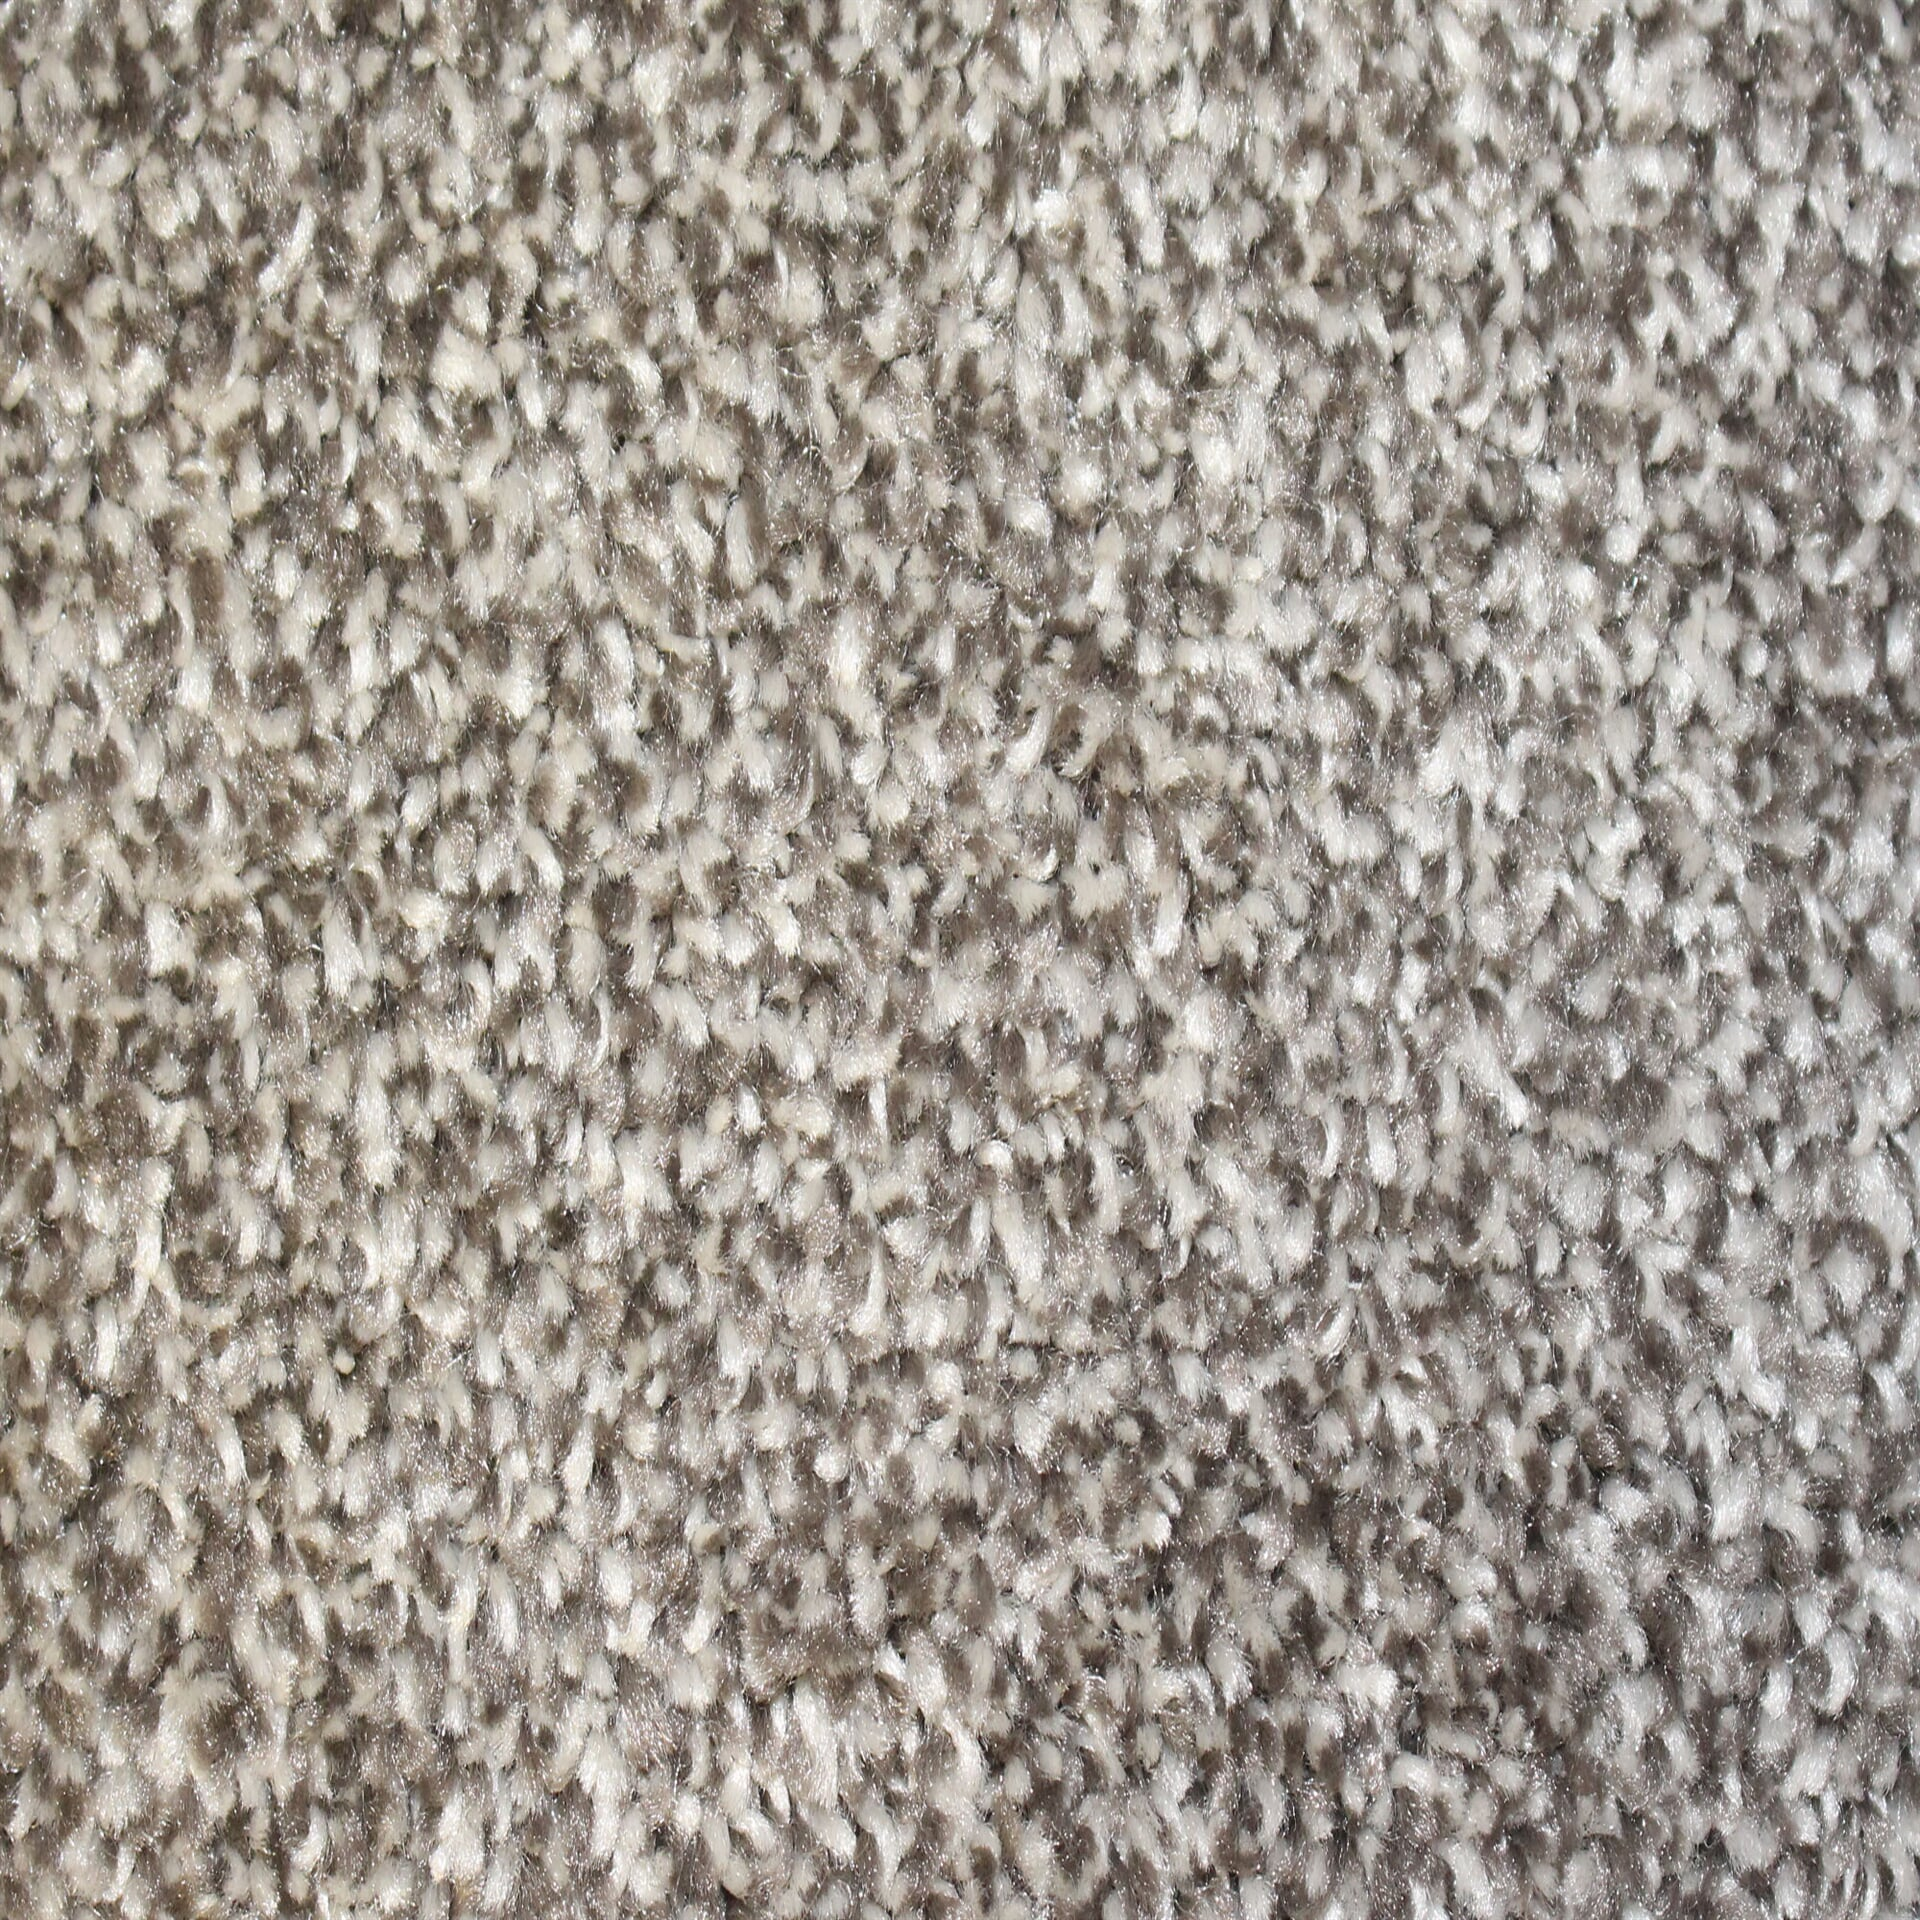 Genstock Pledge carpet in Enchant from MP Contract Flooring